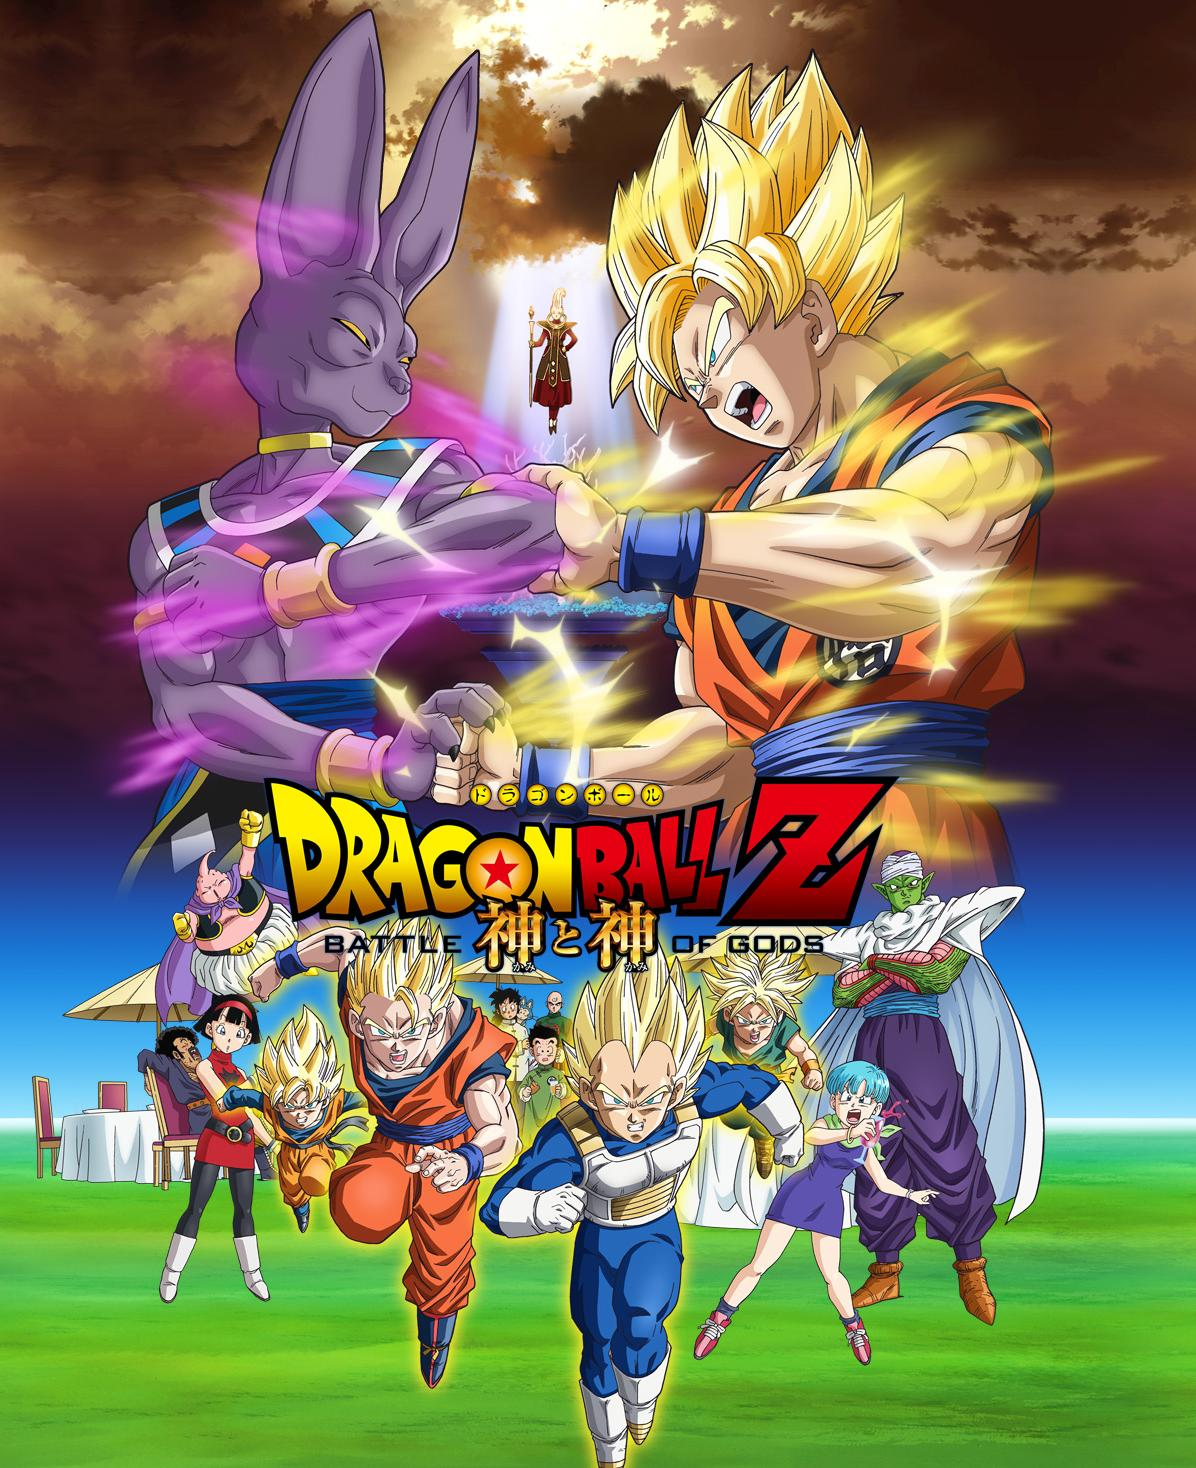 dragon ball z battle of gods coming to us theaters moar